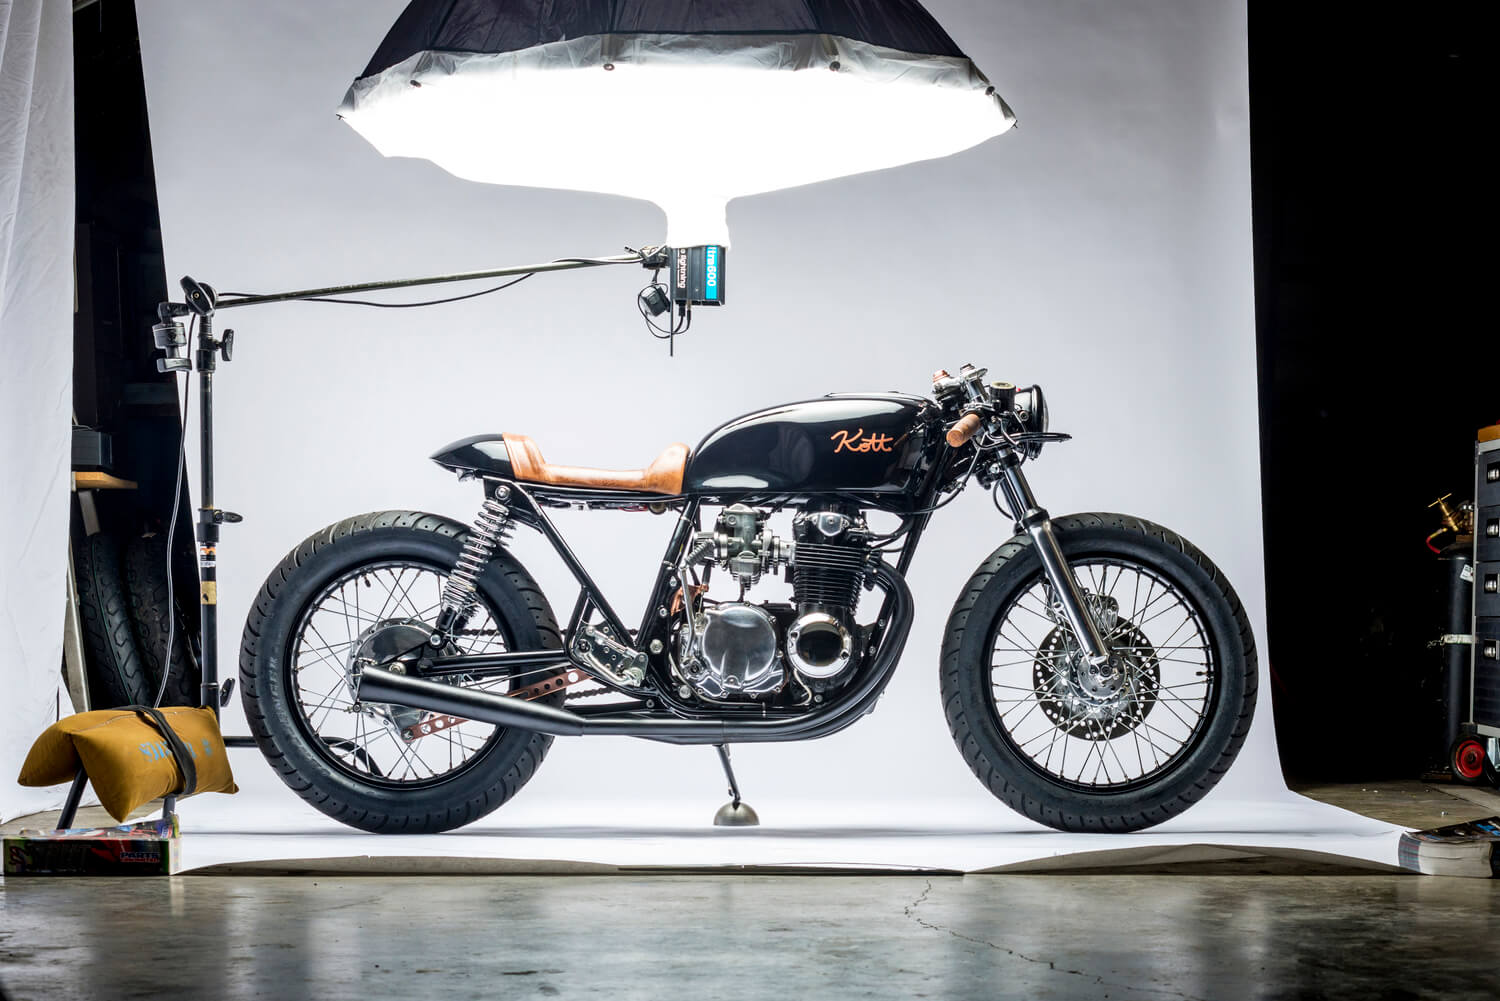 The base bike was a 1980 xs650 in a very poor state cylinders where - Cb550 Caf Racer By Kott Motorcycles